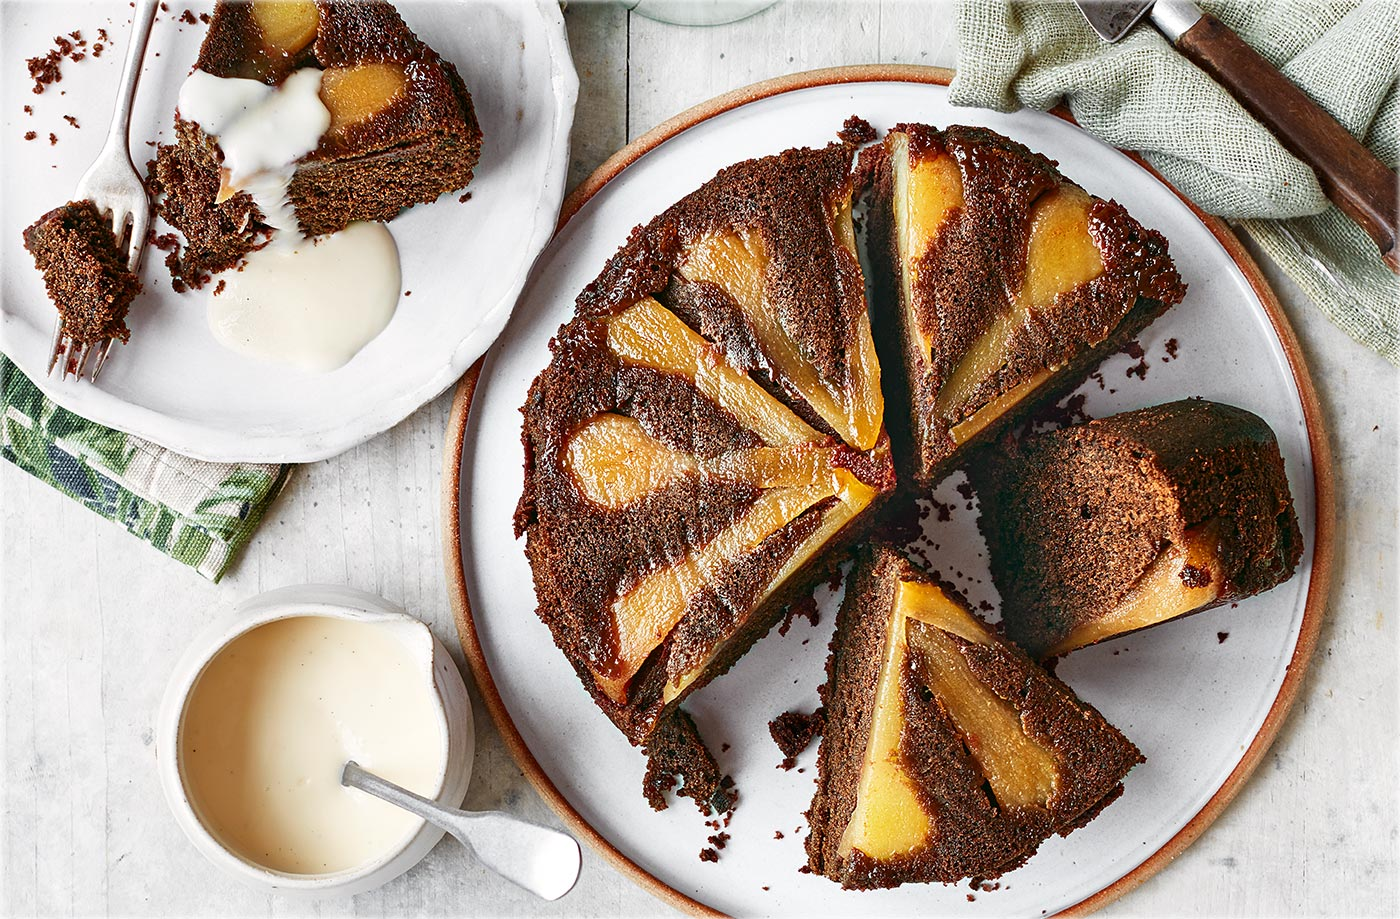 Chocolate and pear upside-down cake recipe